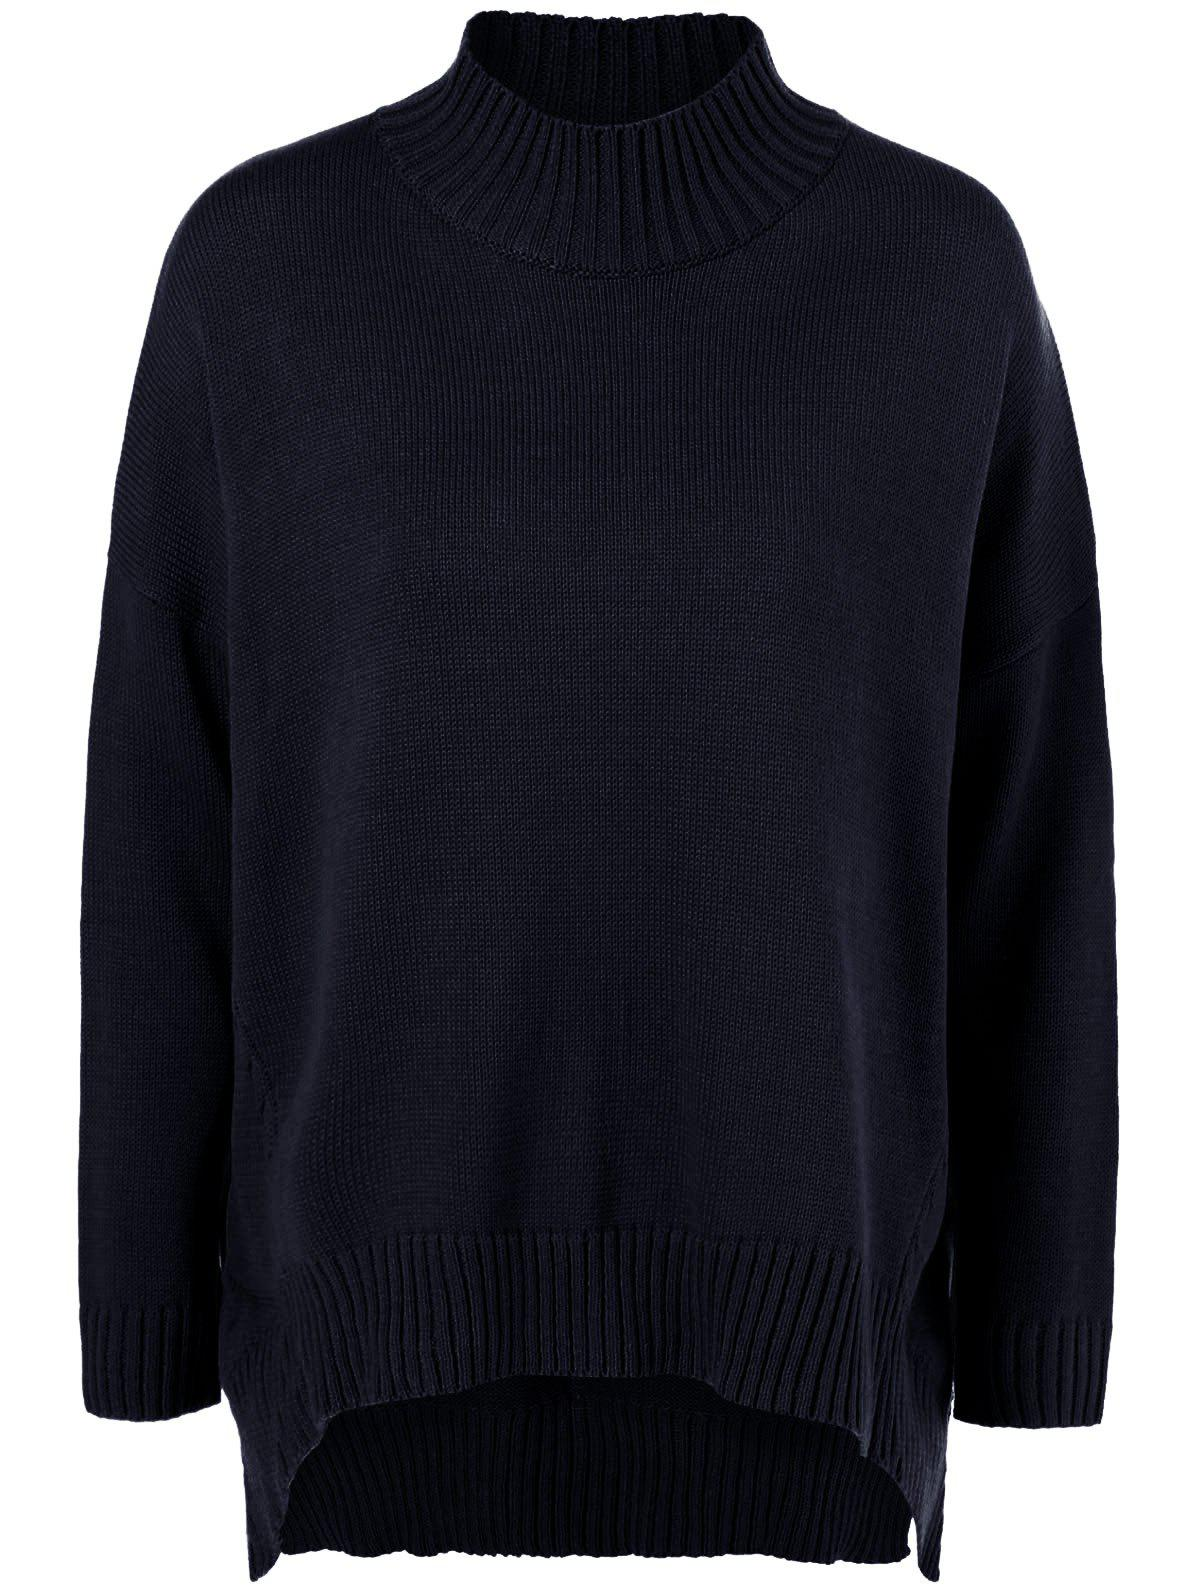 Plus Size Mock Neck Ribbed Sweater inc new deep black women s size xl shimmer ribbed cowl neck sweater $79 147